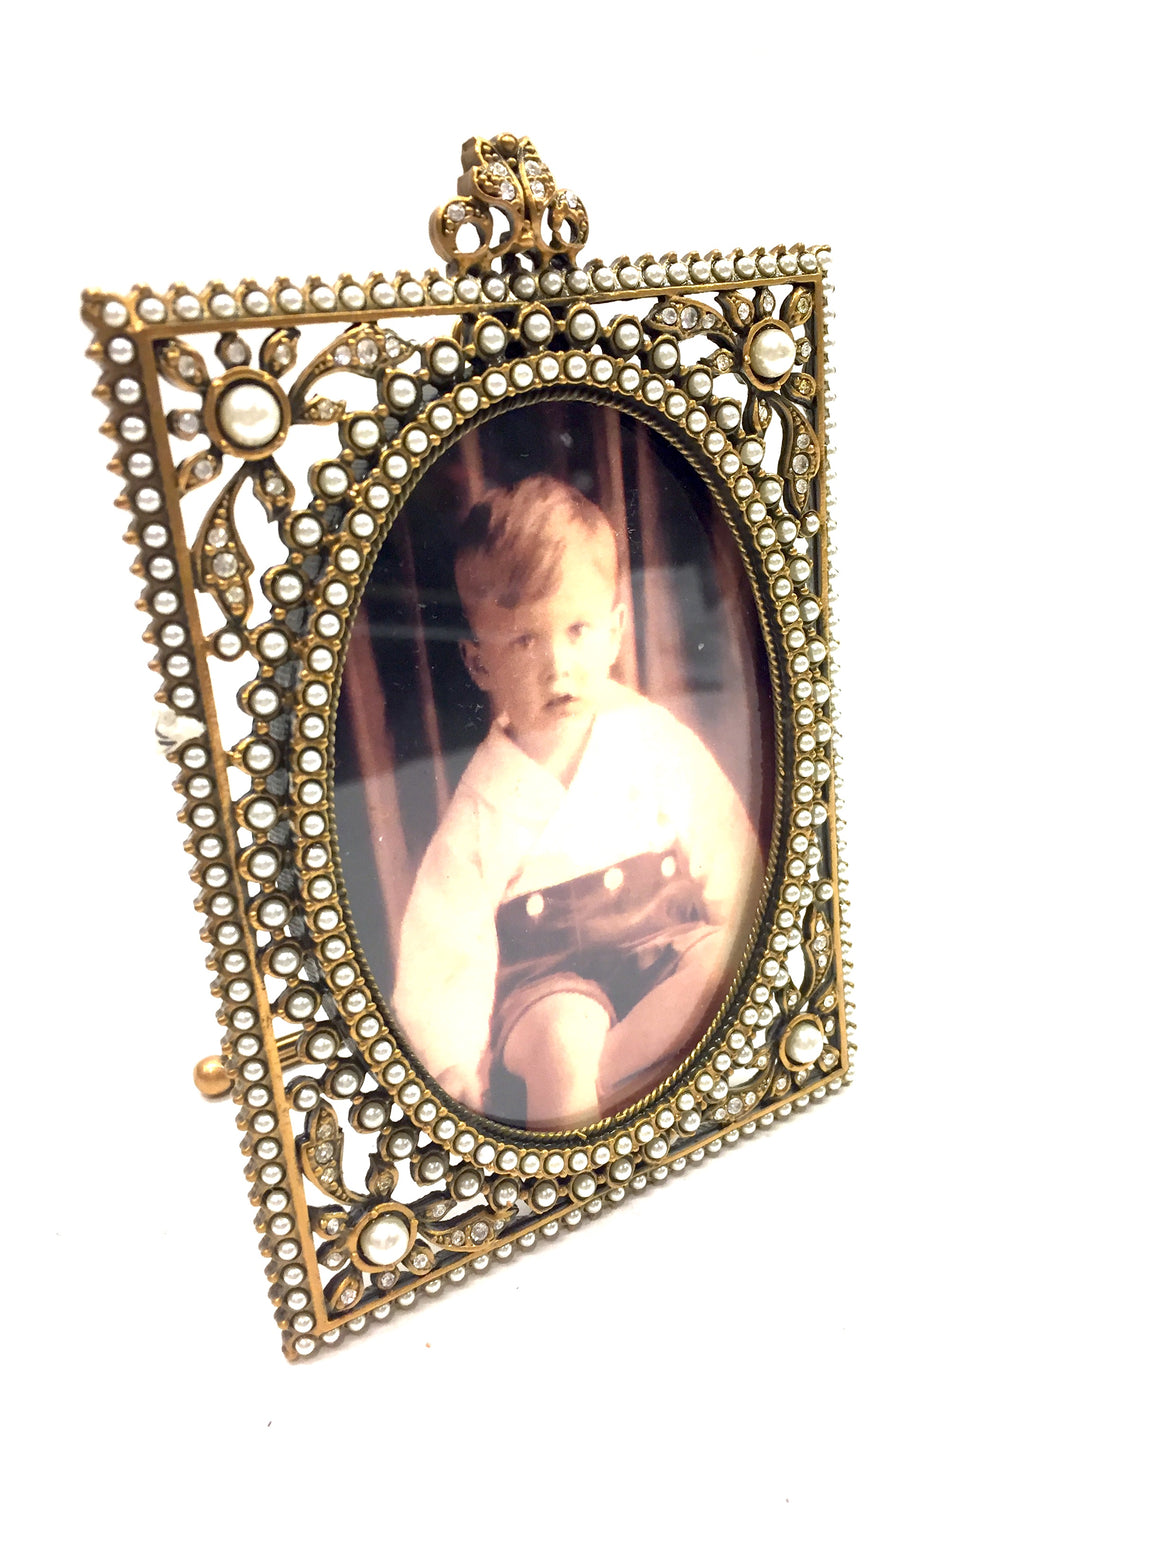 New EDGAR BEREBI Limited Edition Bronze Pearl & Crystal Jeweled Photo Frame